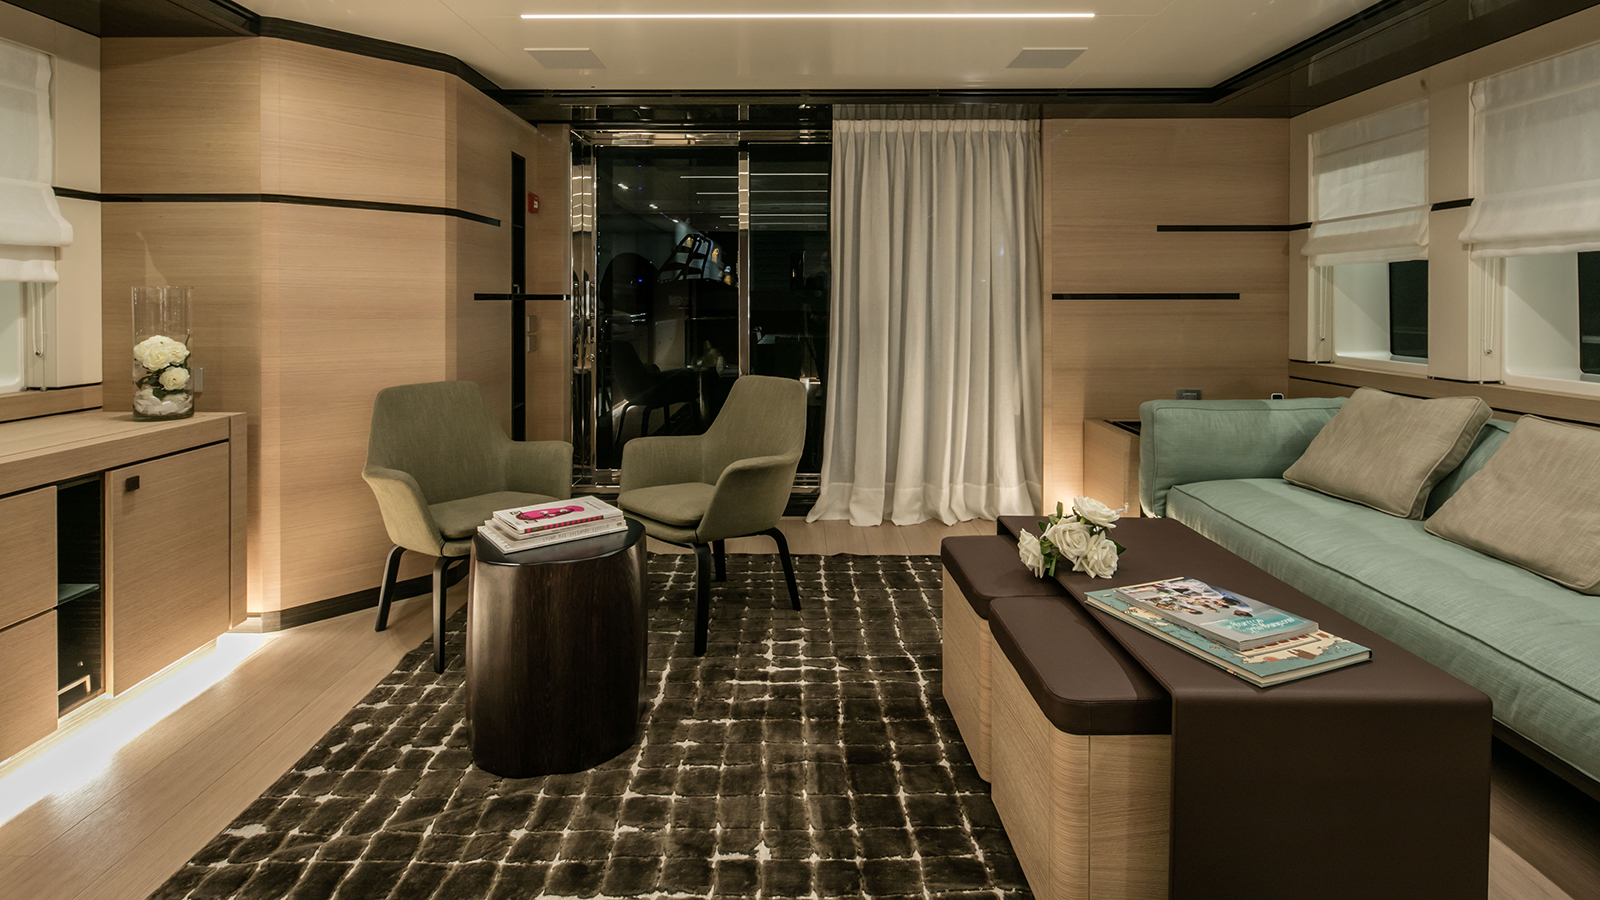 the-skylounge-of-the-cantiere-delle-marche-nauta-air-111-yacht-hyhma